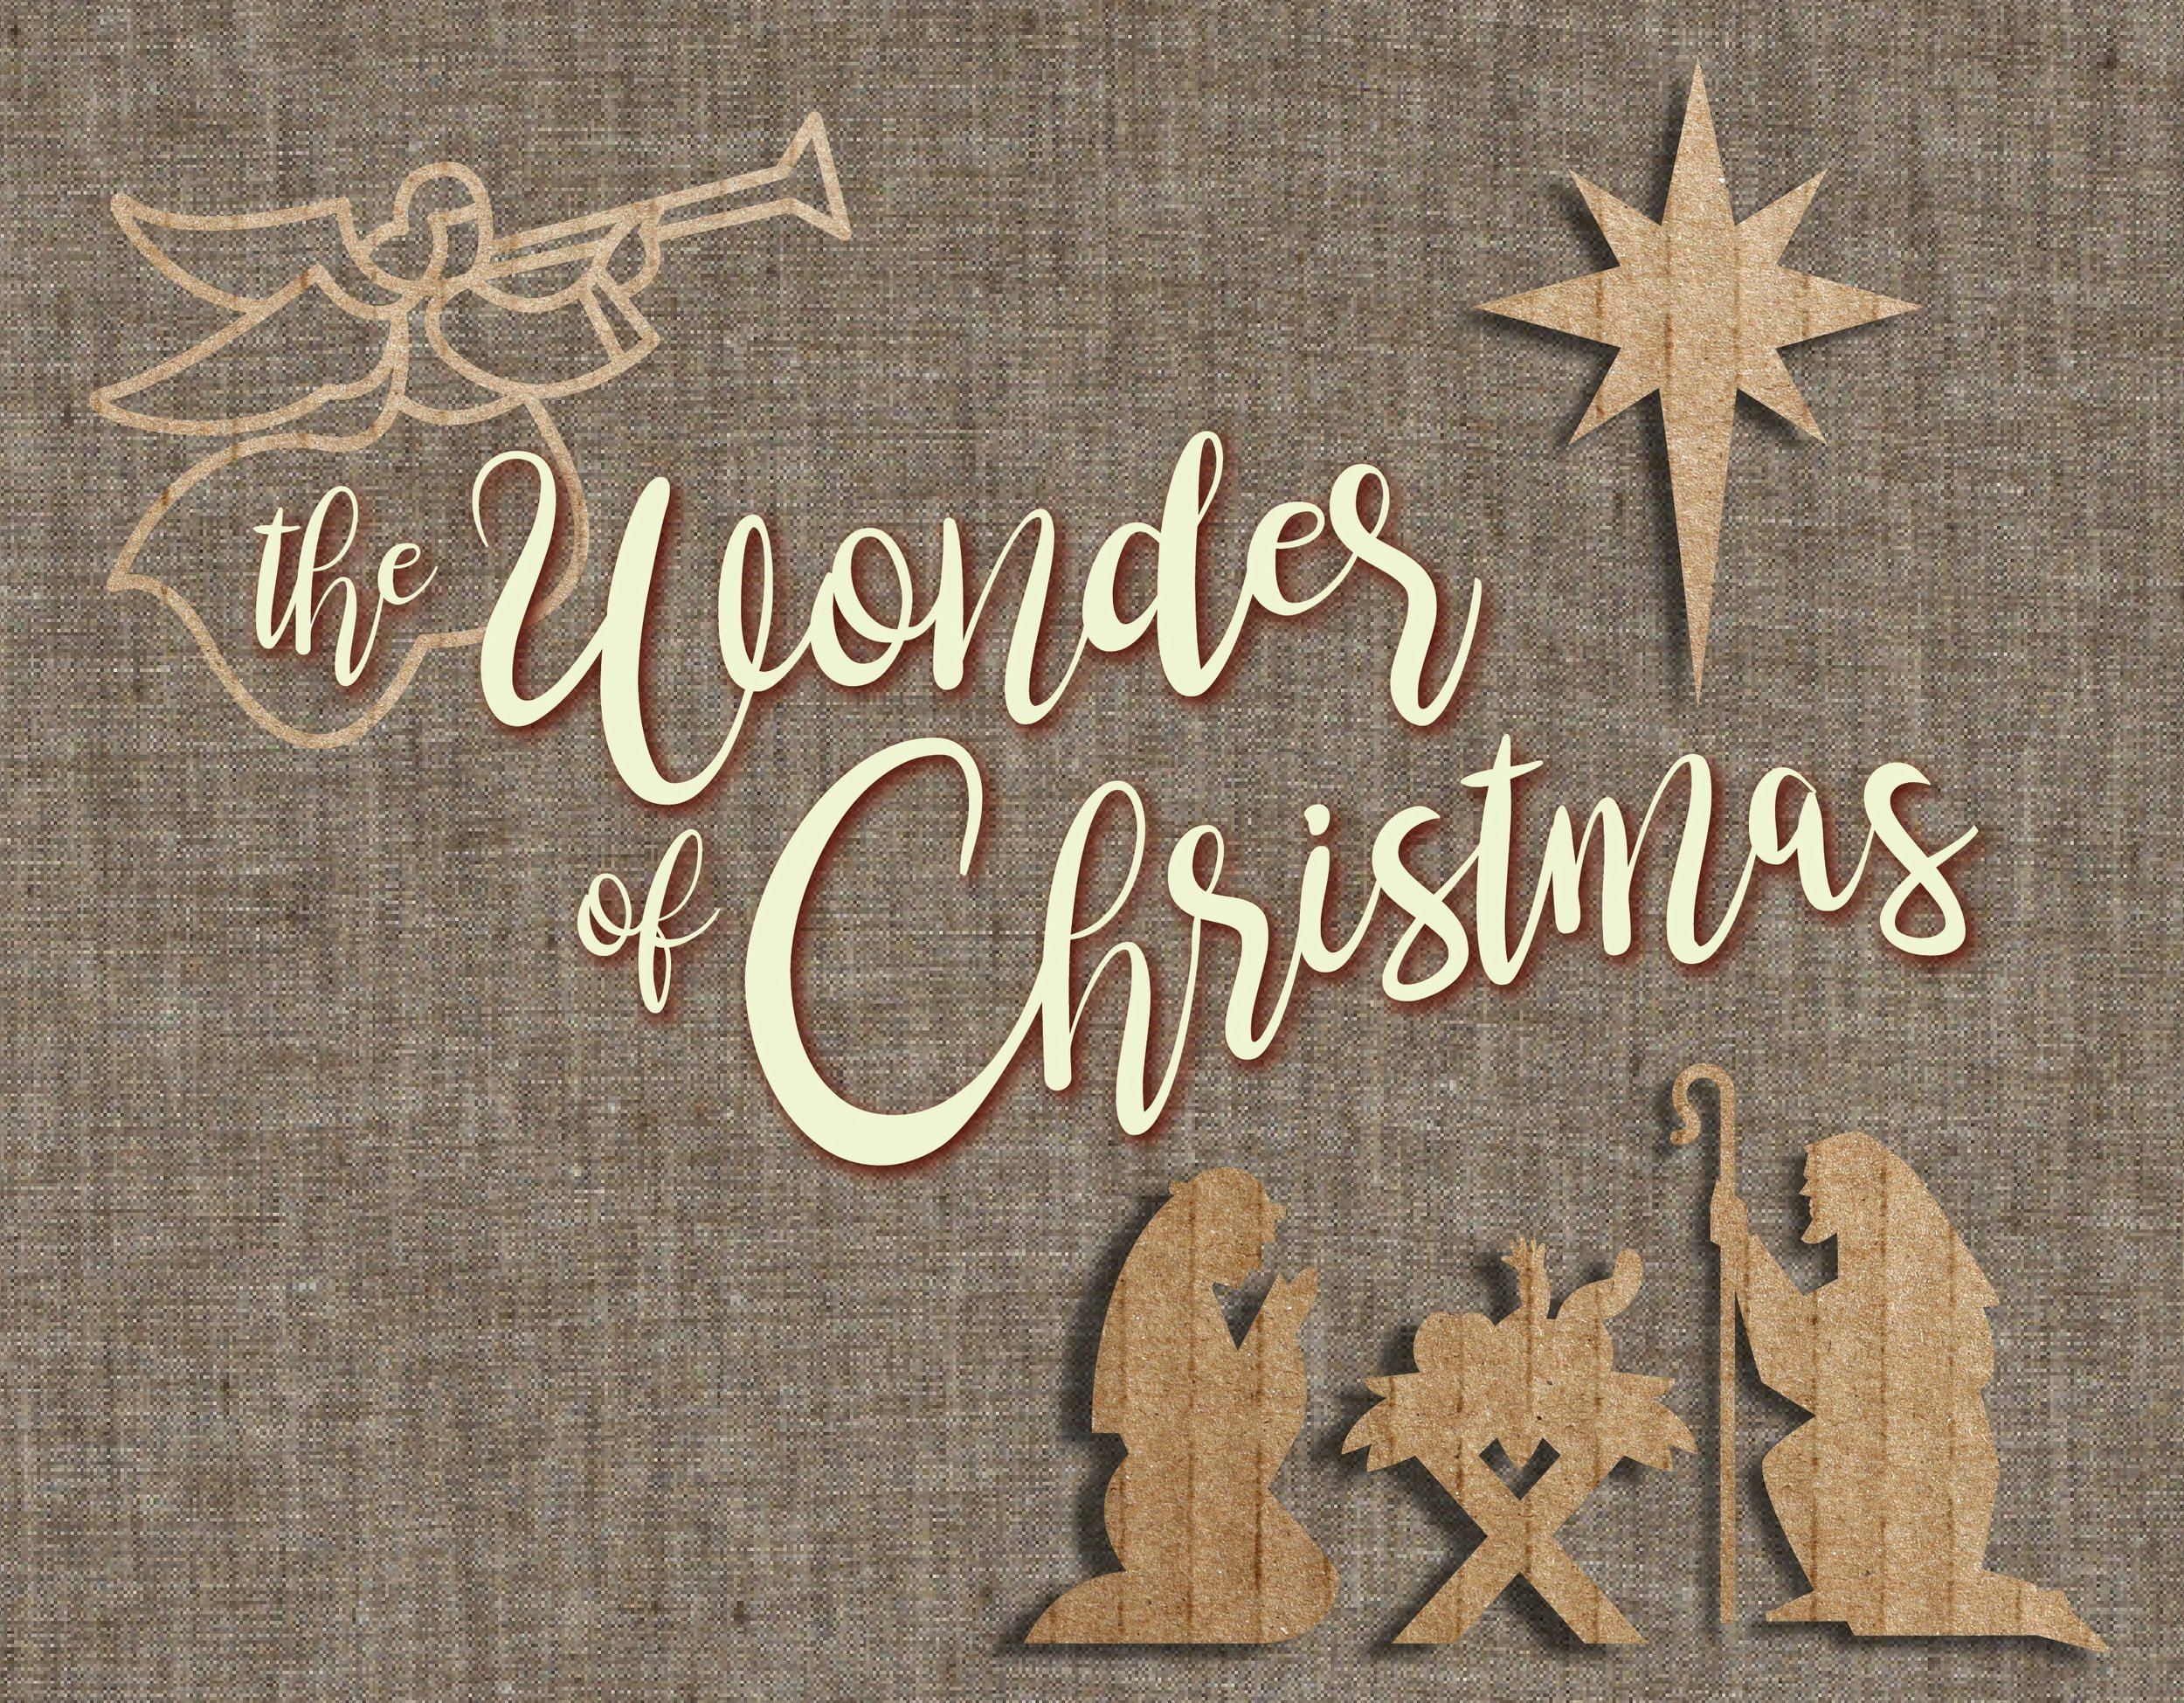 Wonder of Christmas Standard Slide.jpg